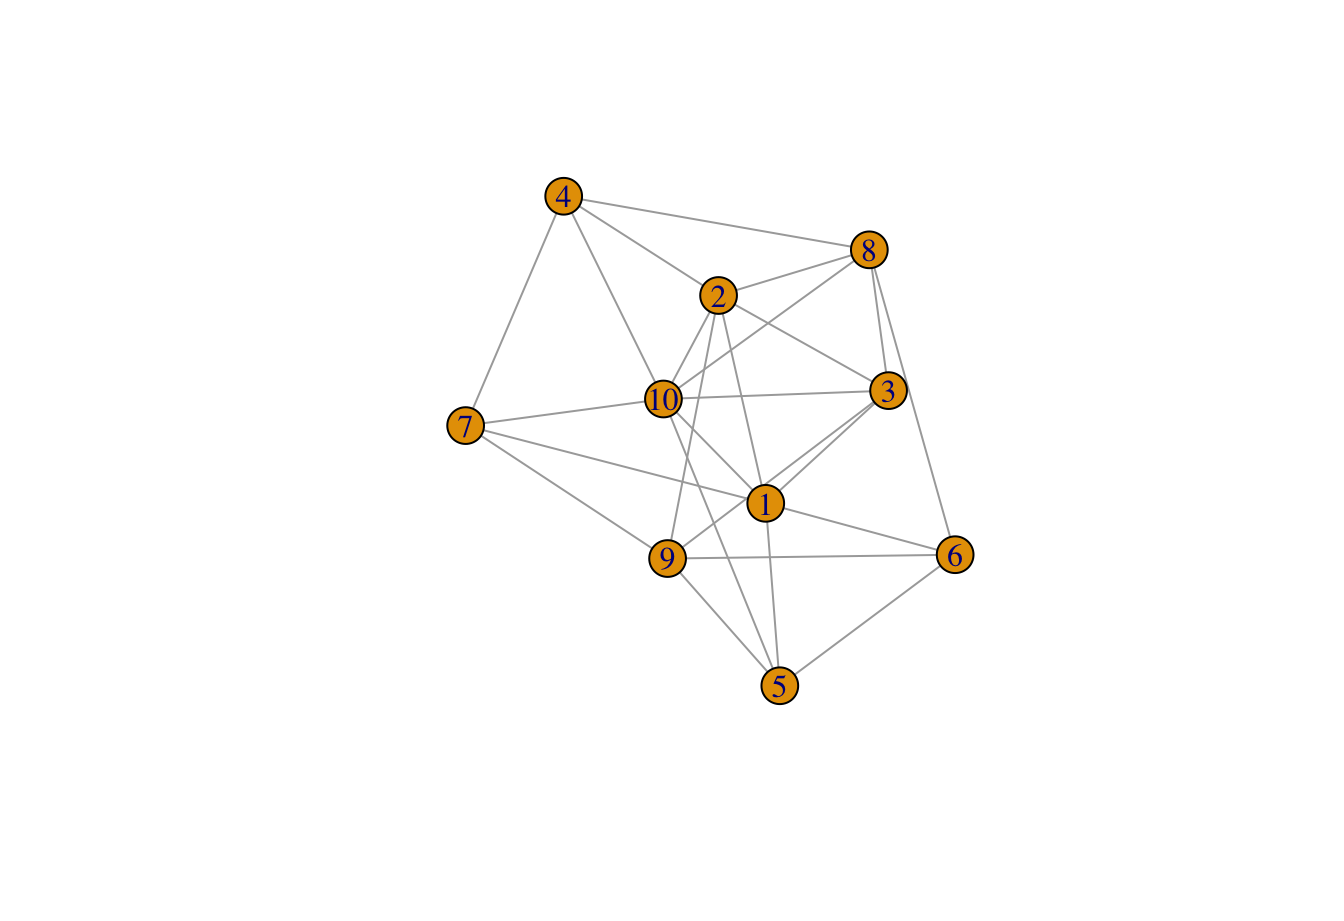 R Network Analysis: Centrality Measures (article) - DataCamp